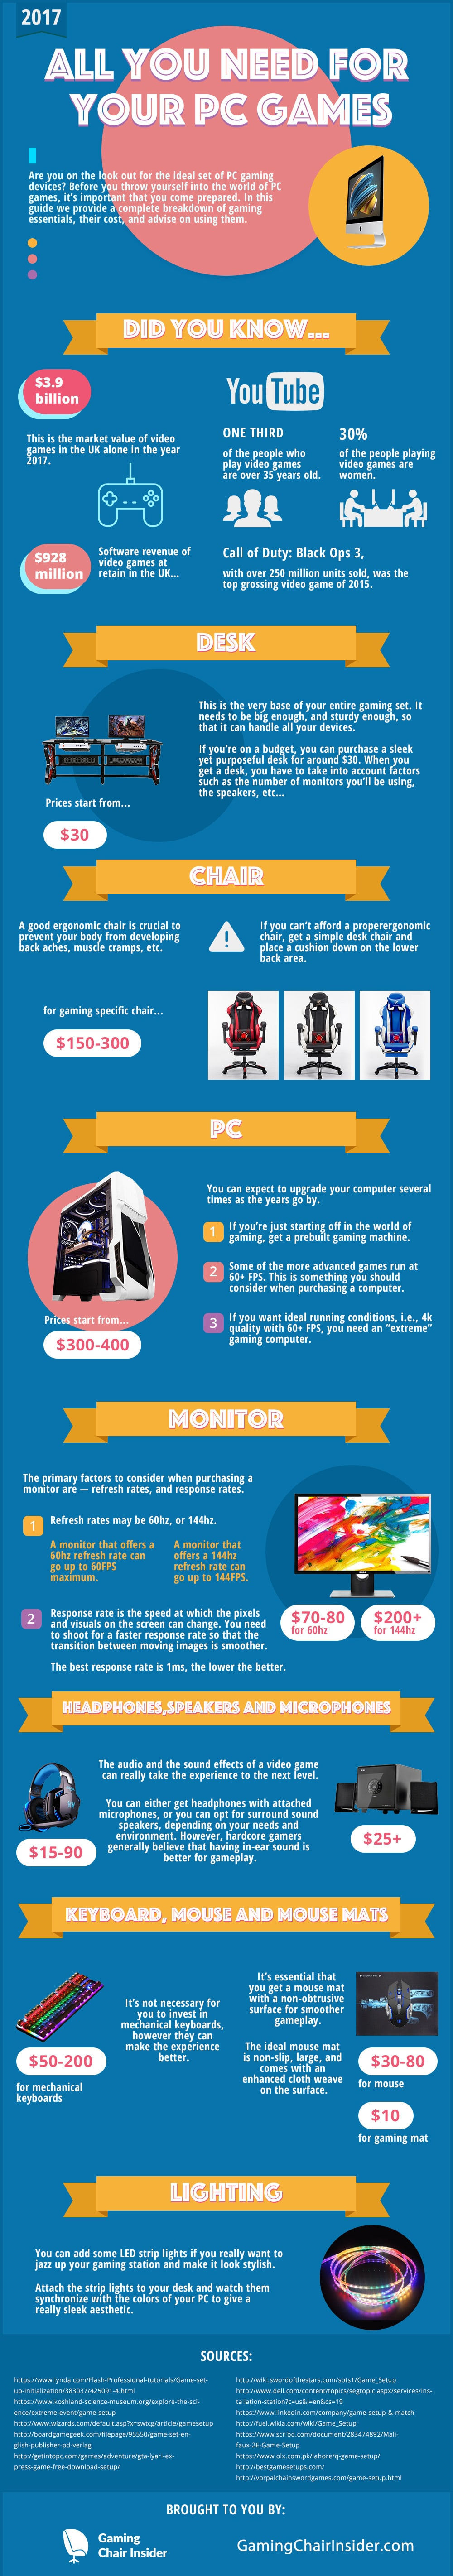 Gaming PC Setup Guide Infographic